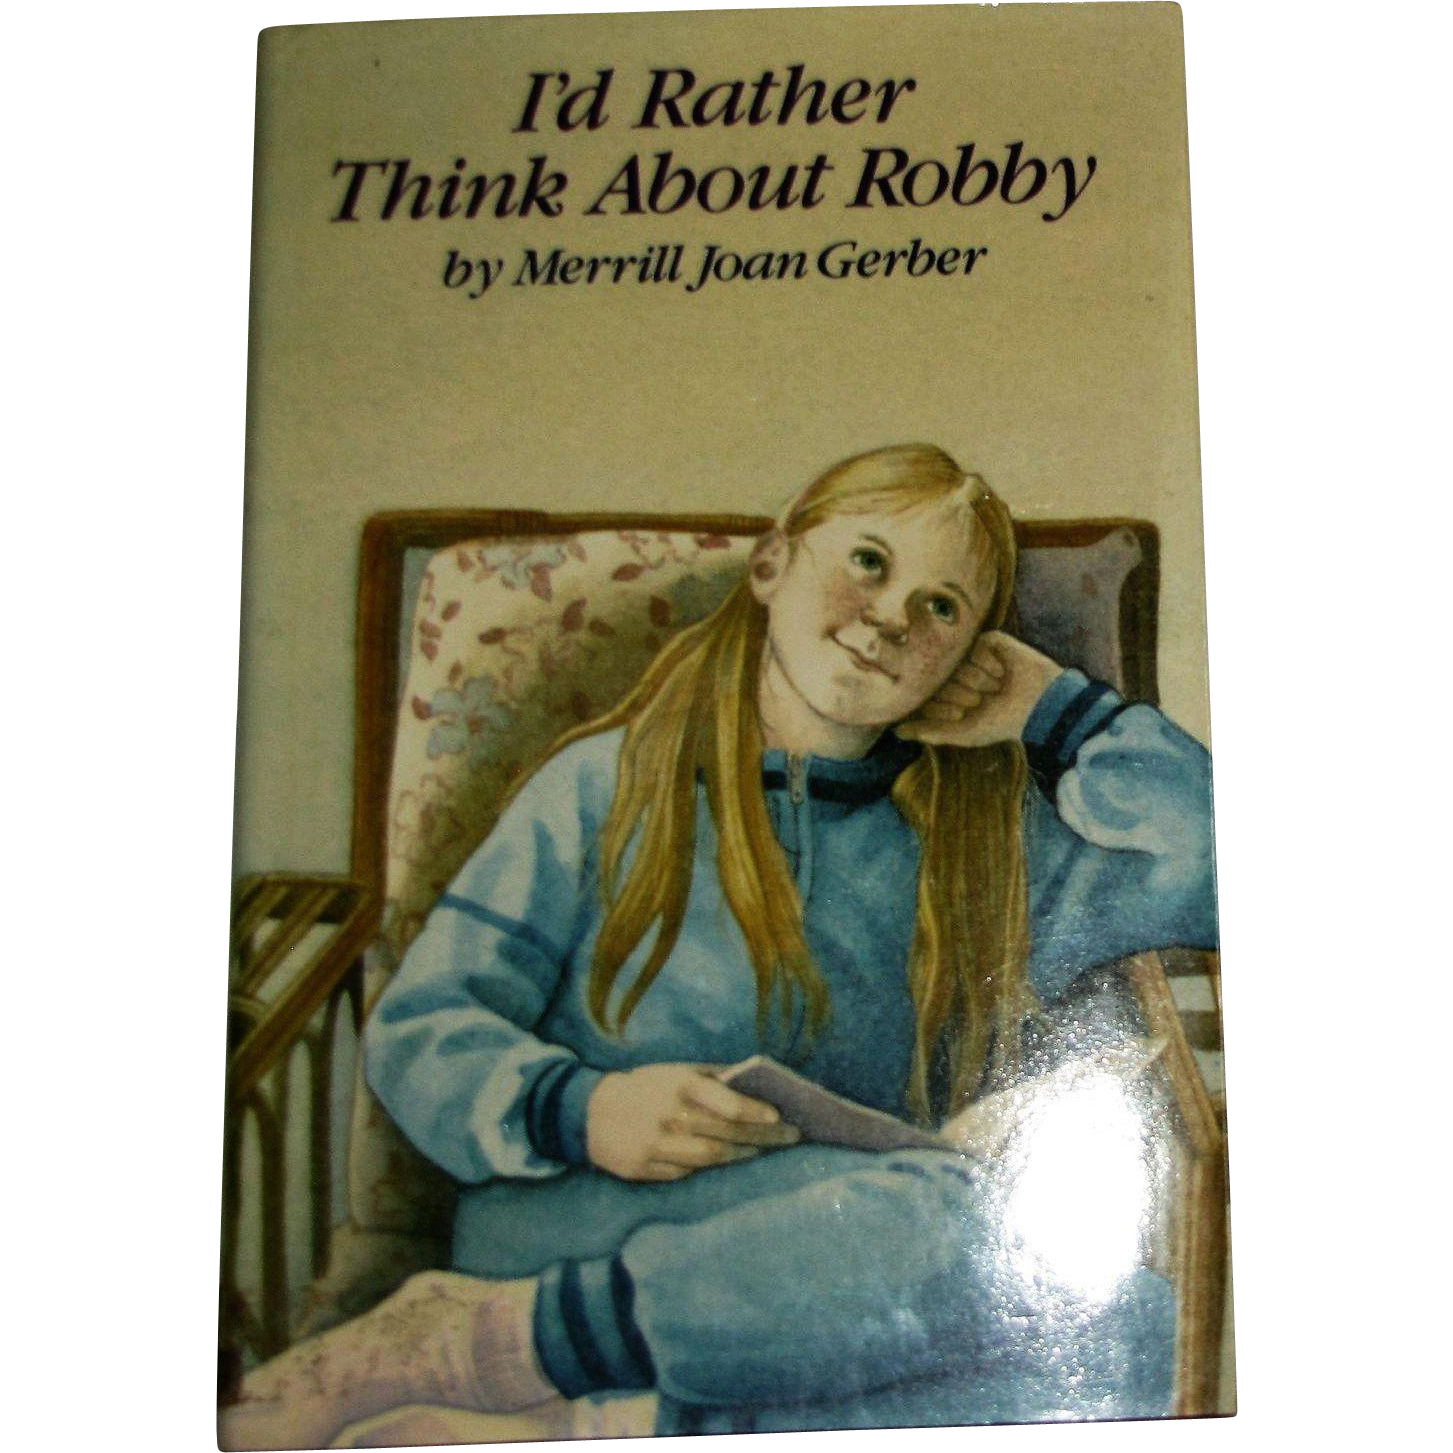 I'd Rather Think About Robby by Merrill Joan Gerber, HCDJ, 1989, Stated First Edition, Like New, For Young Adults 12-16 year olds